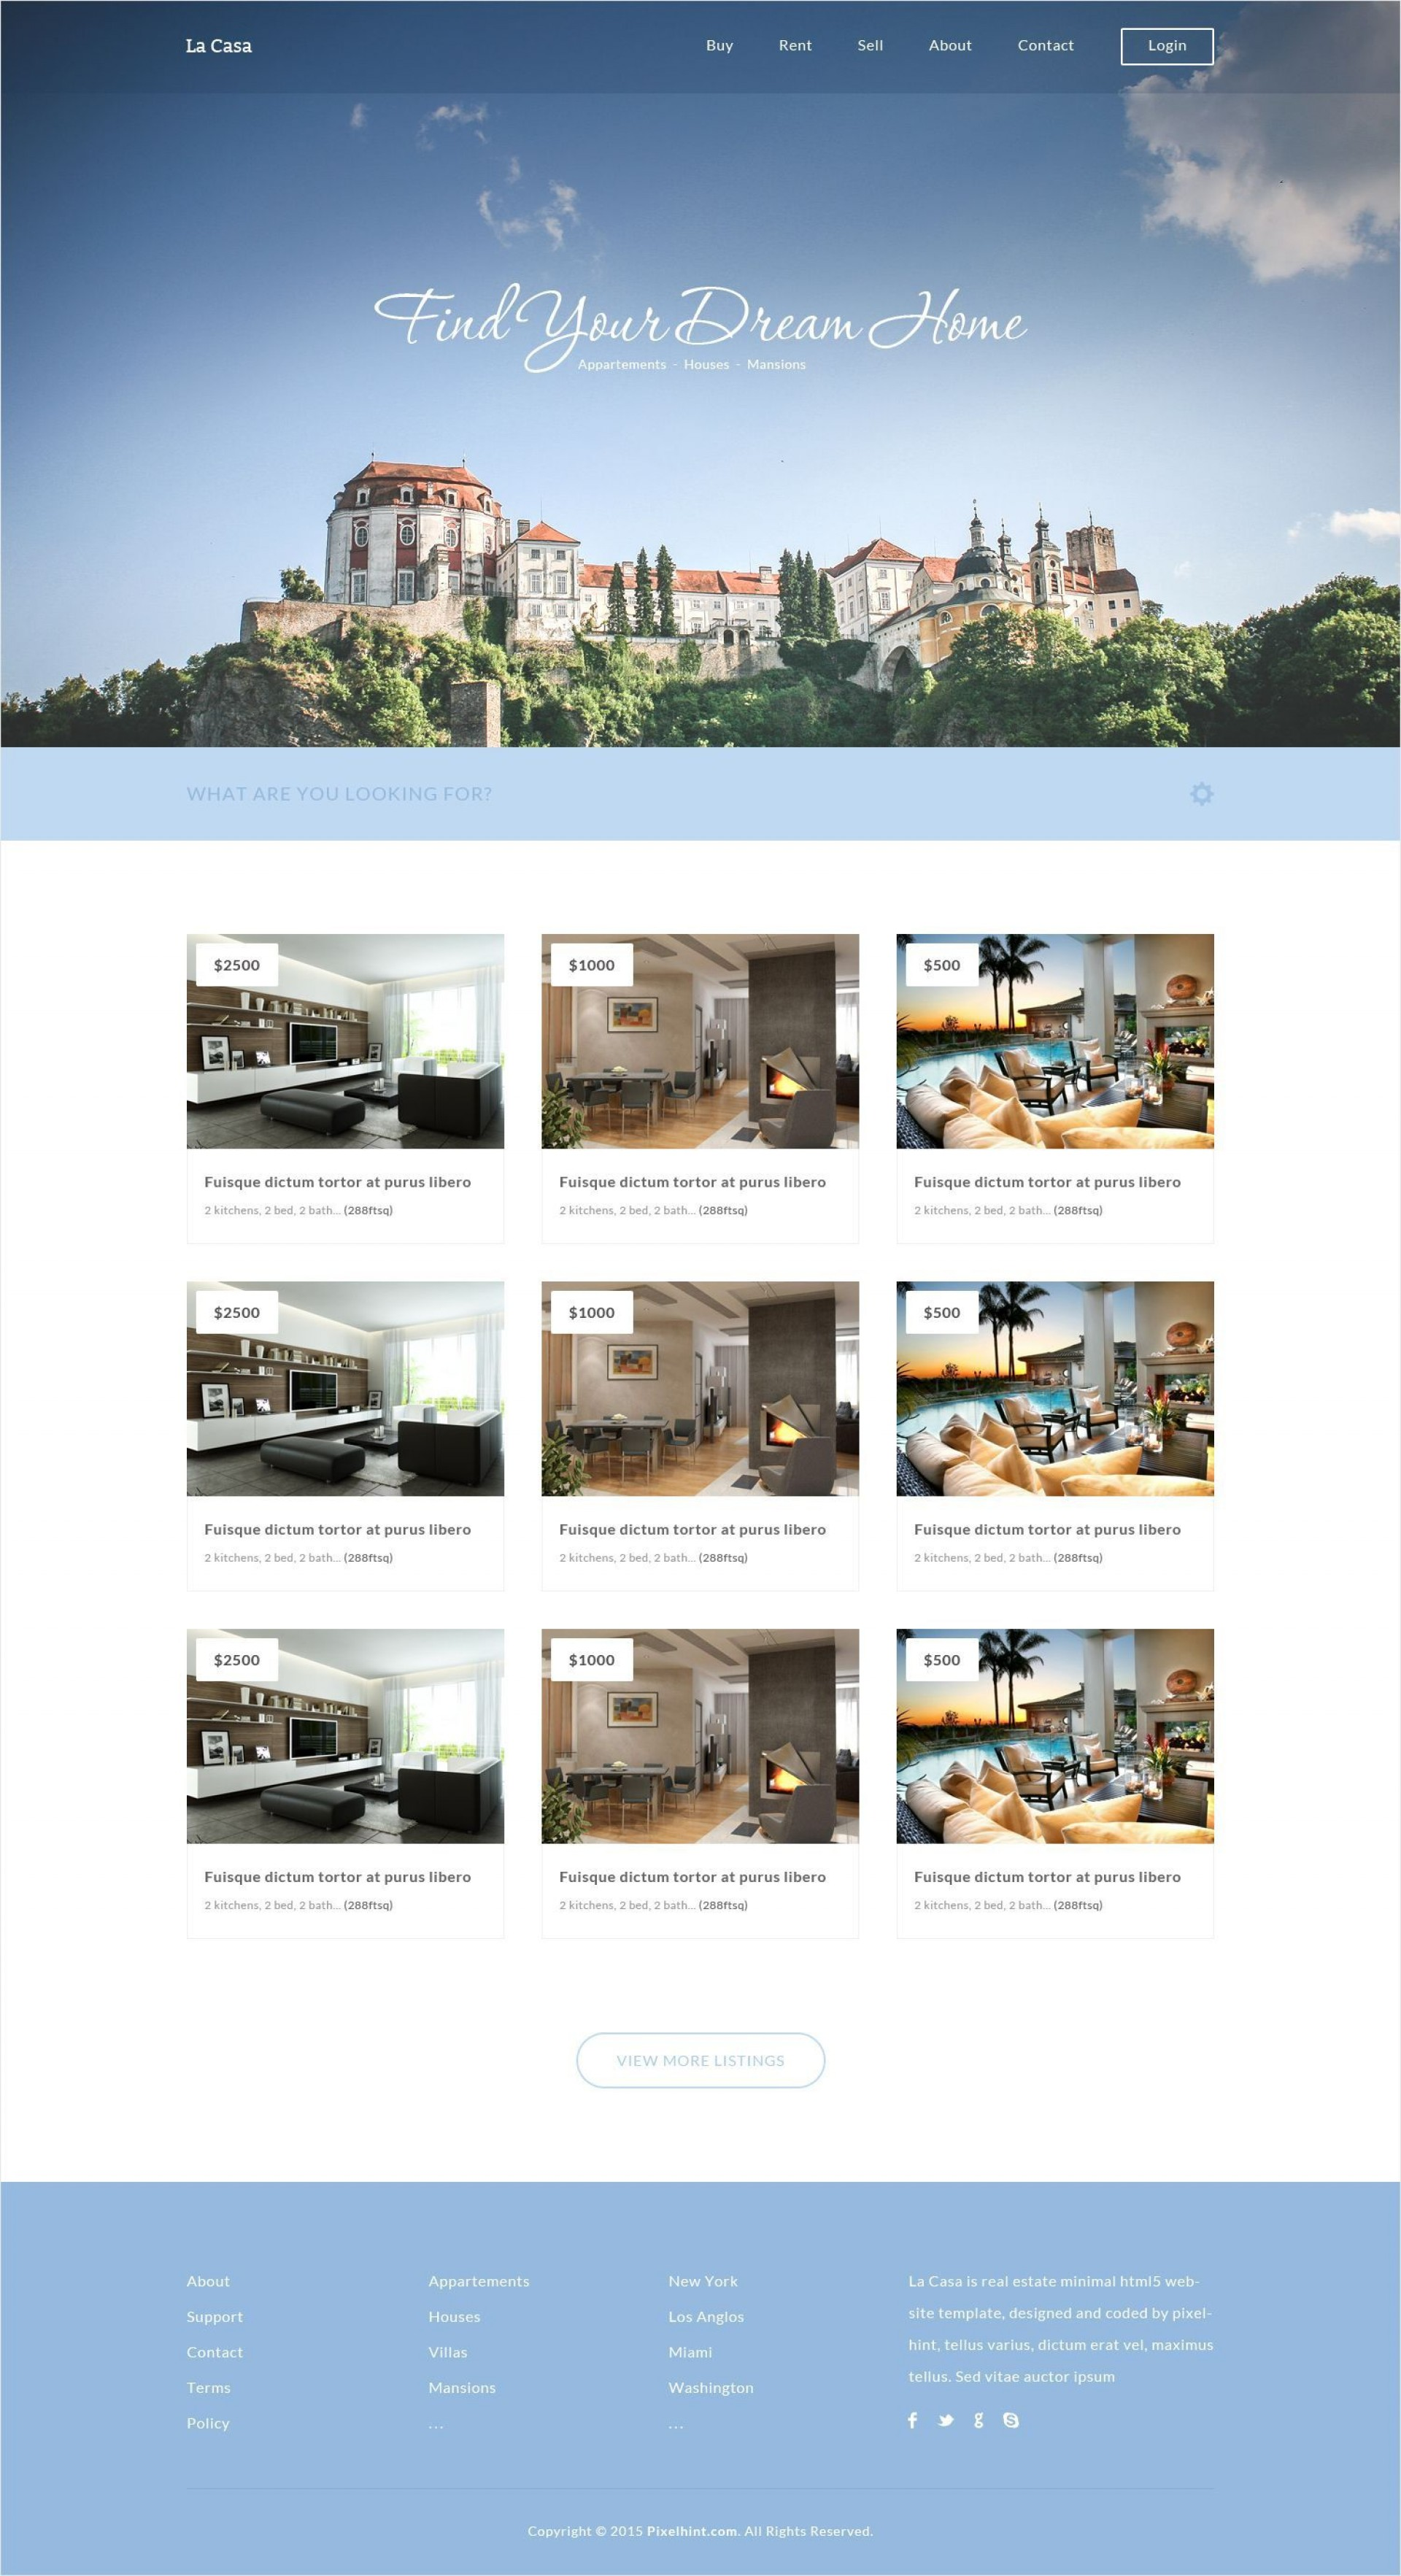 000 Simple Free Real Estate Template Idea  Website Download Bootstrap 41920